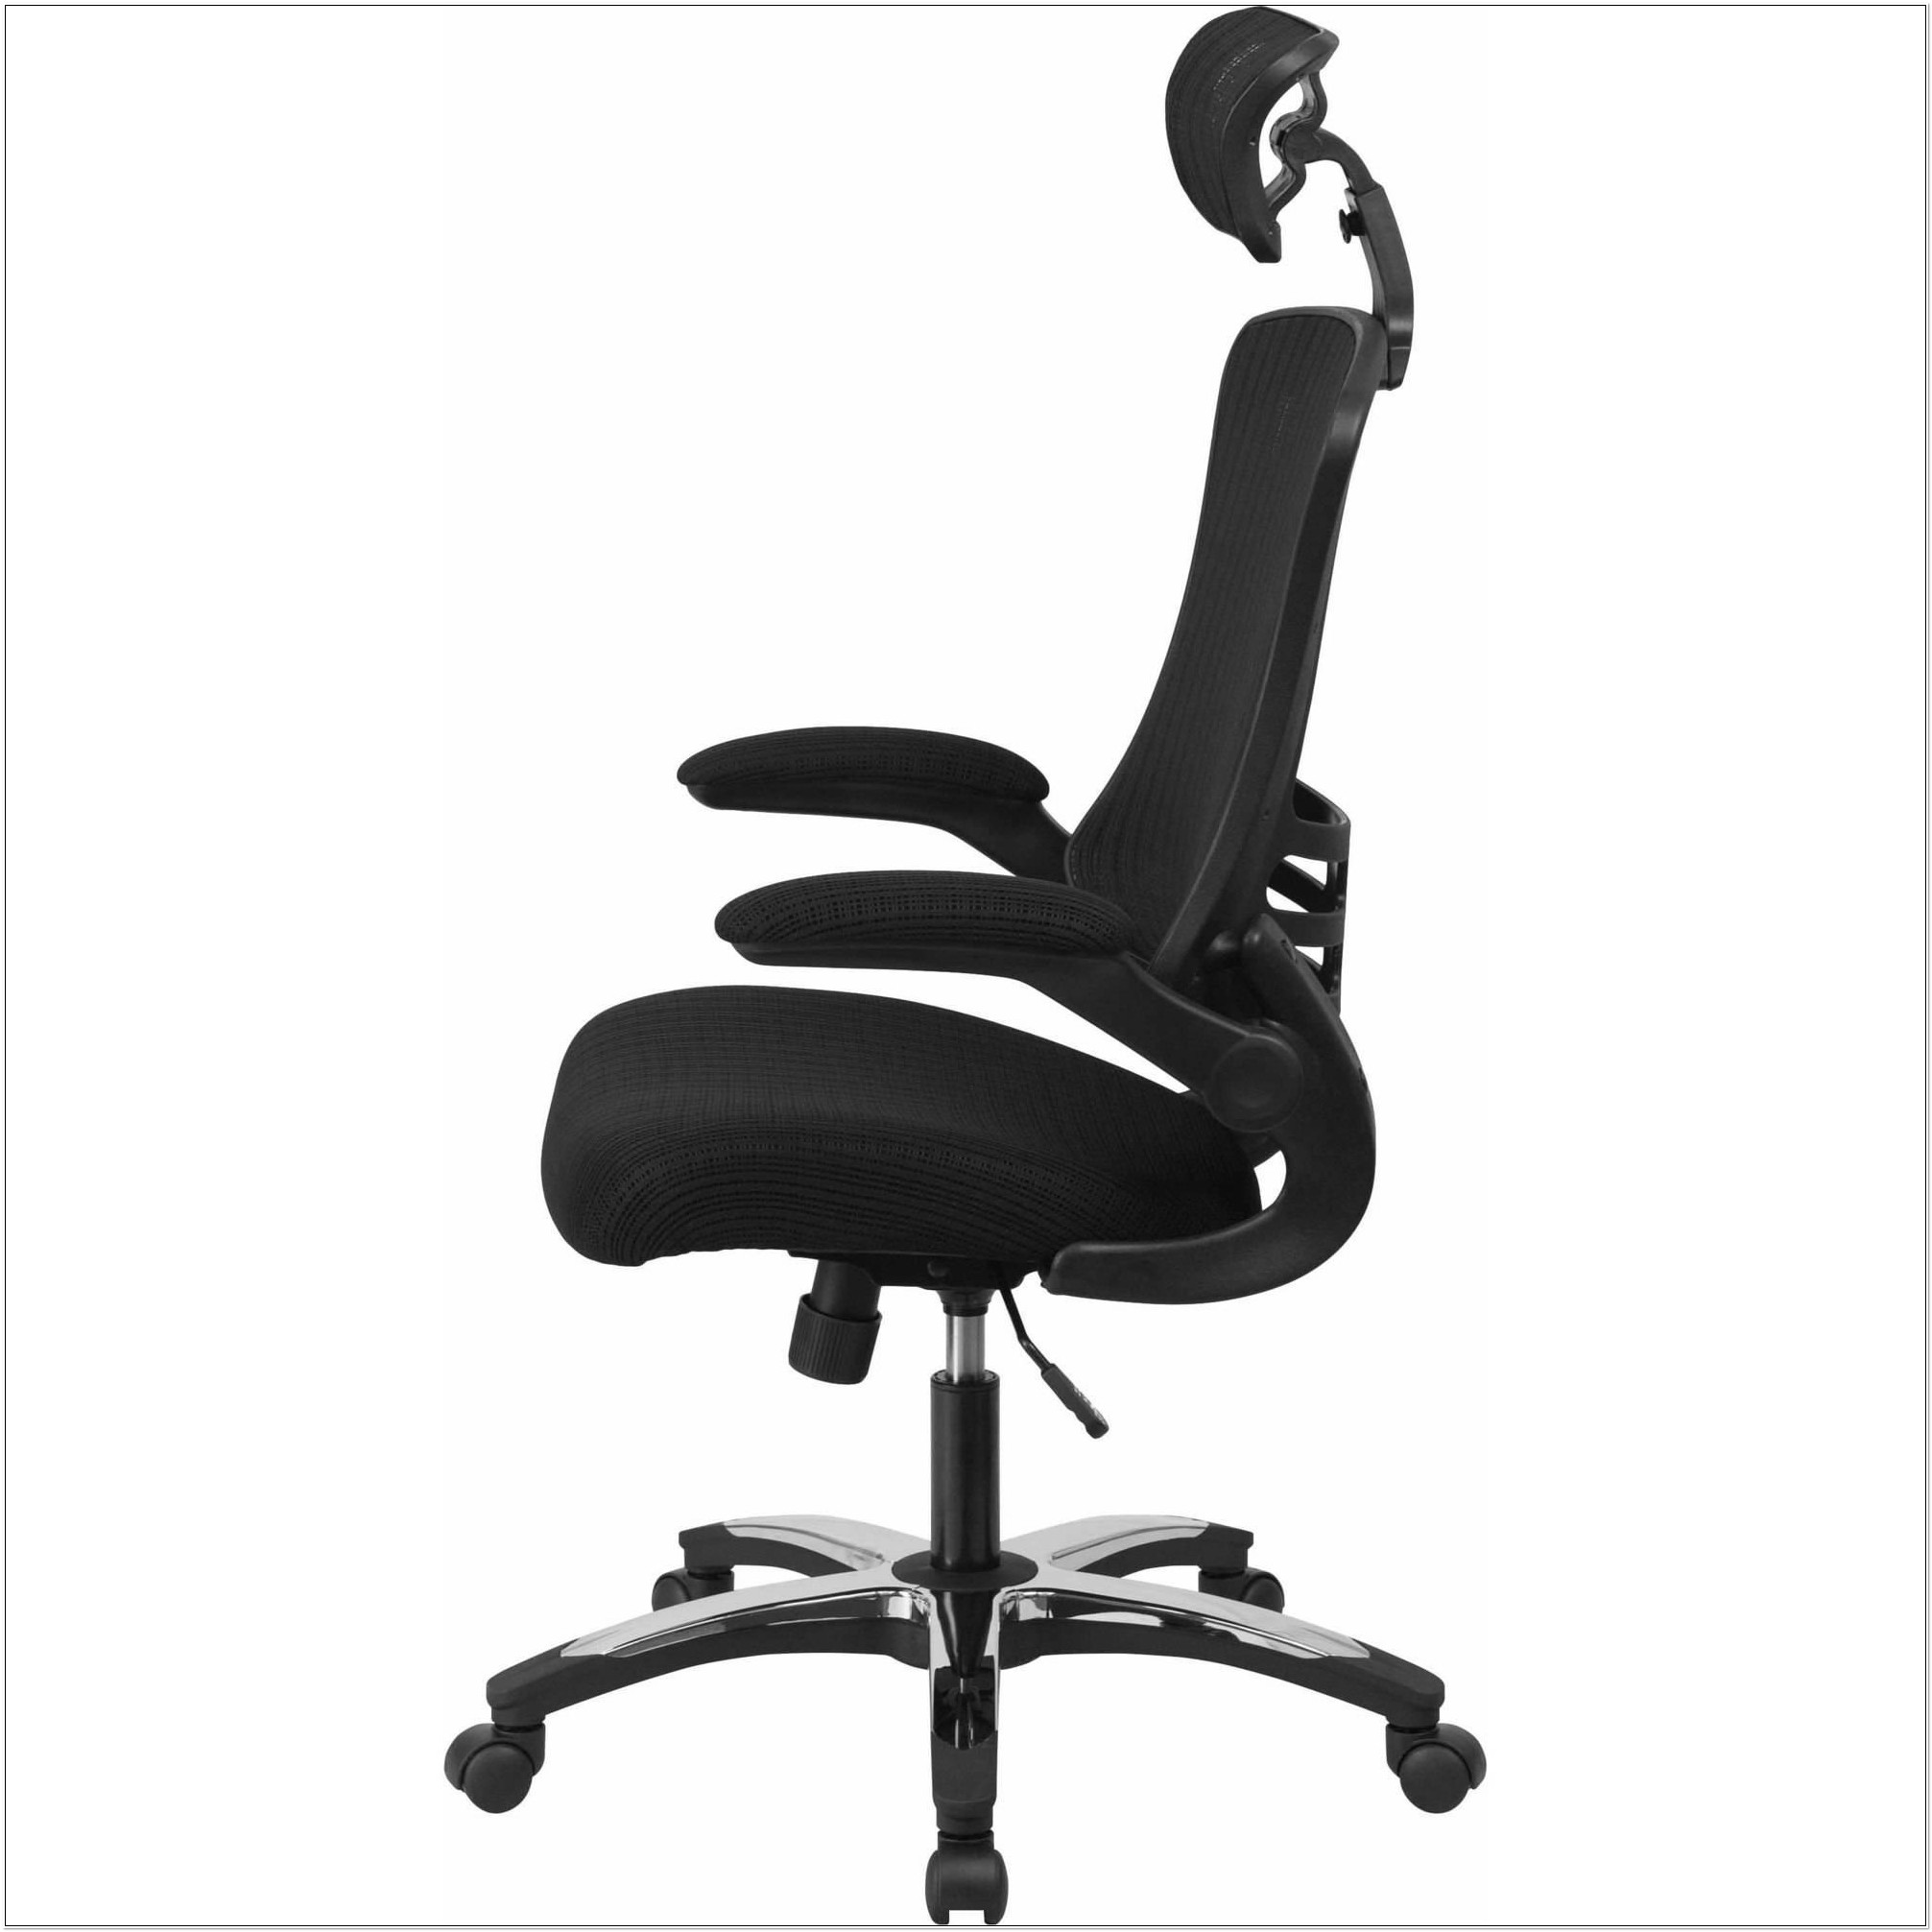 Designer Mesh Executive Office Chair